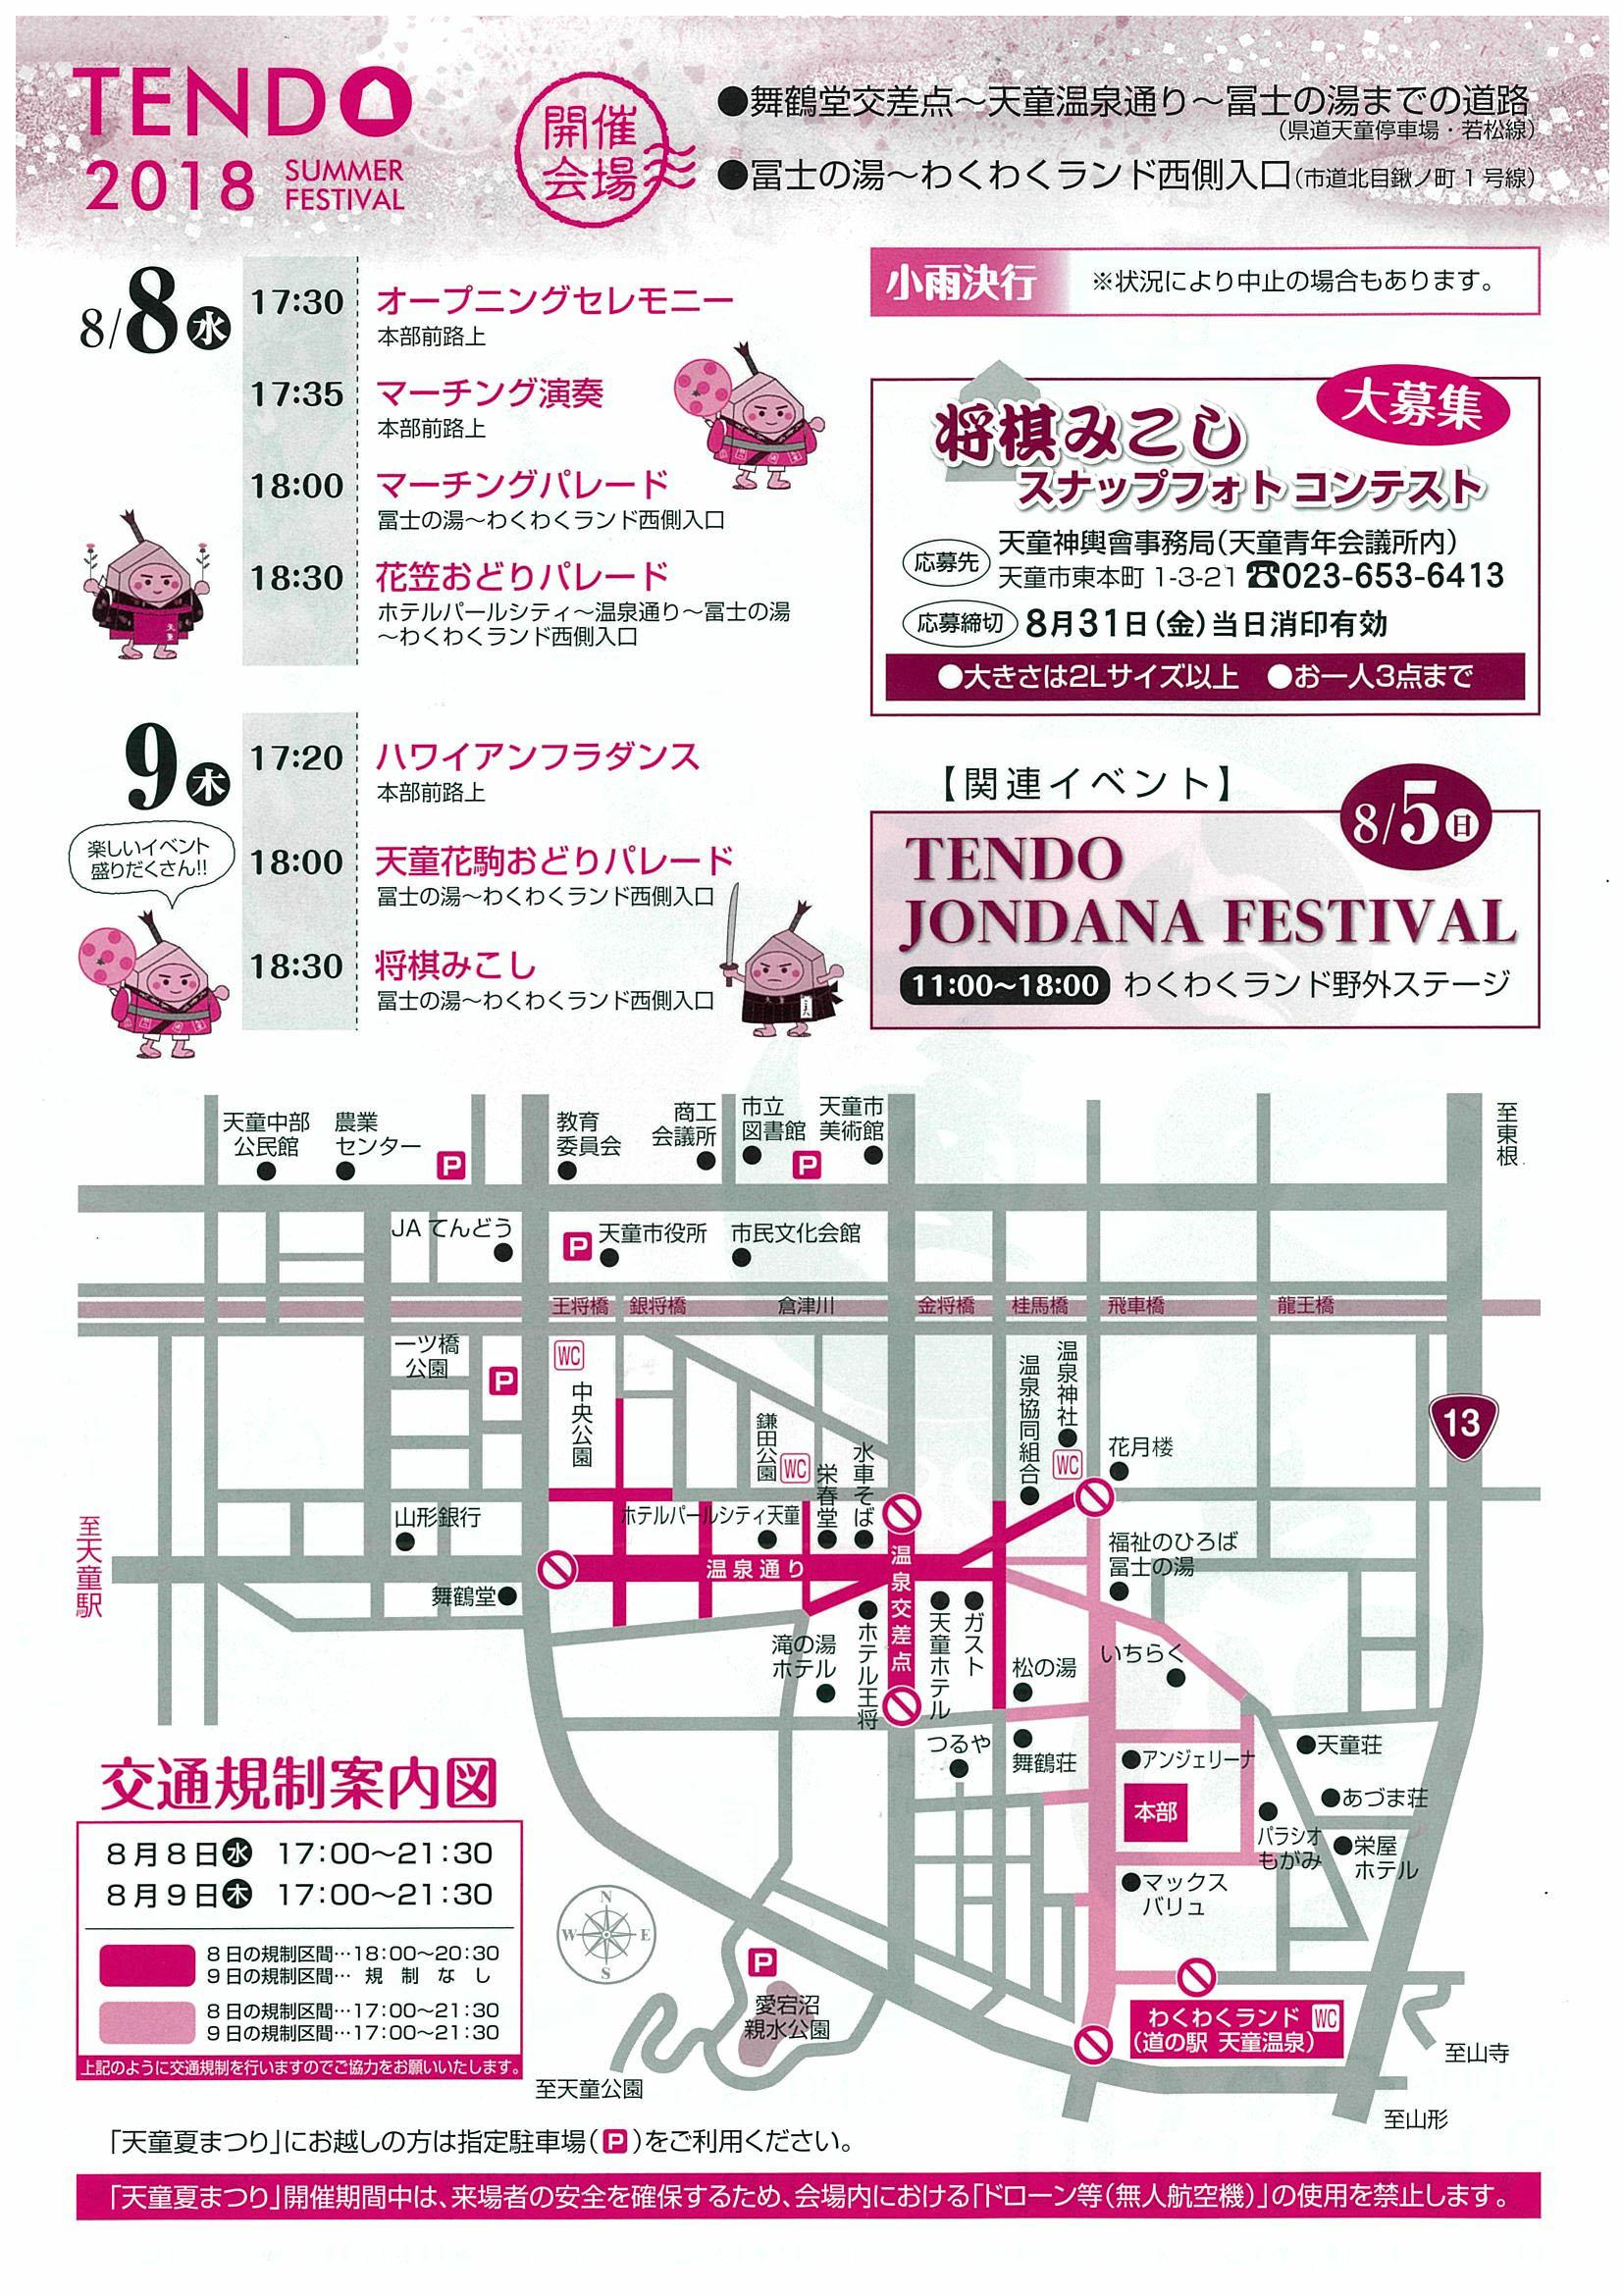 [8/8, 9] Tendo summer festival ★Flower shade dances the hotel front and parades!